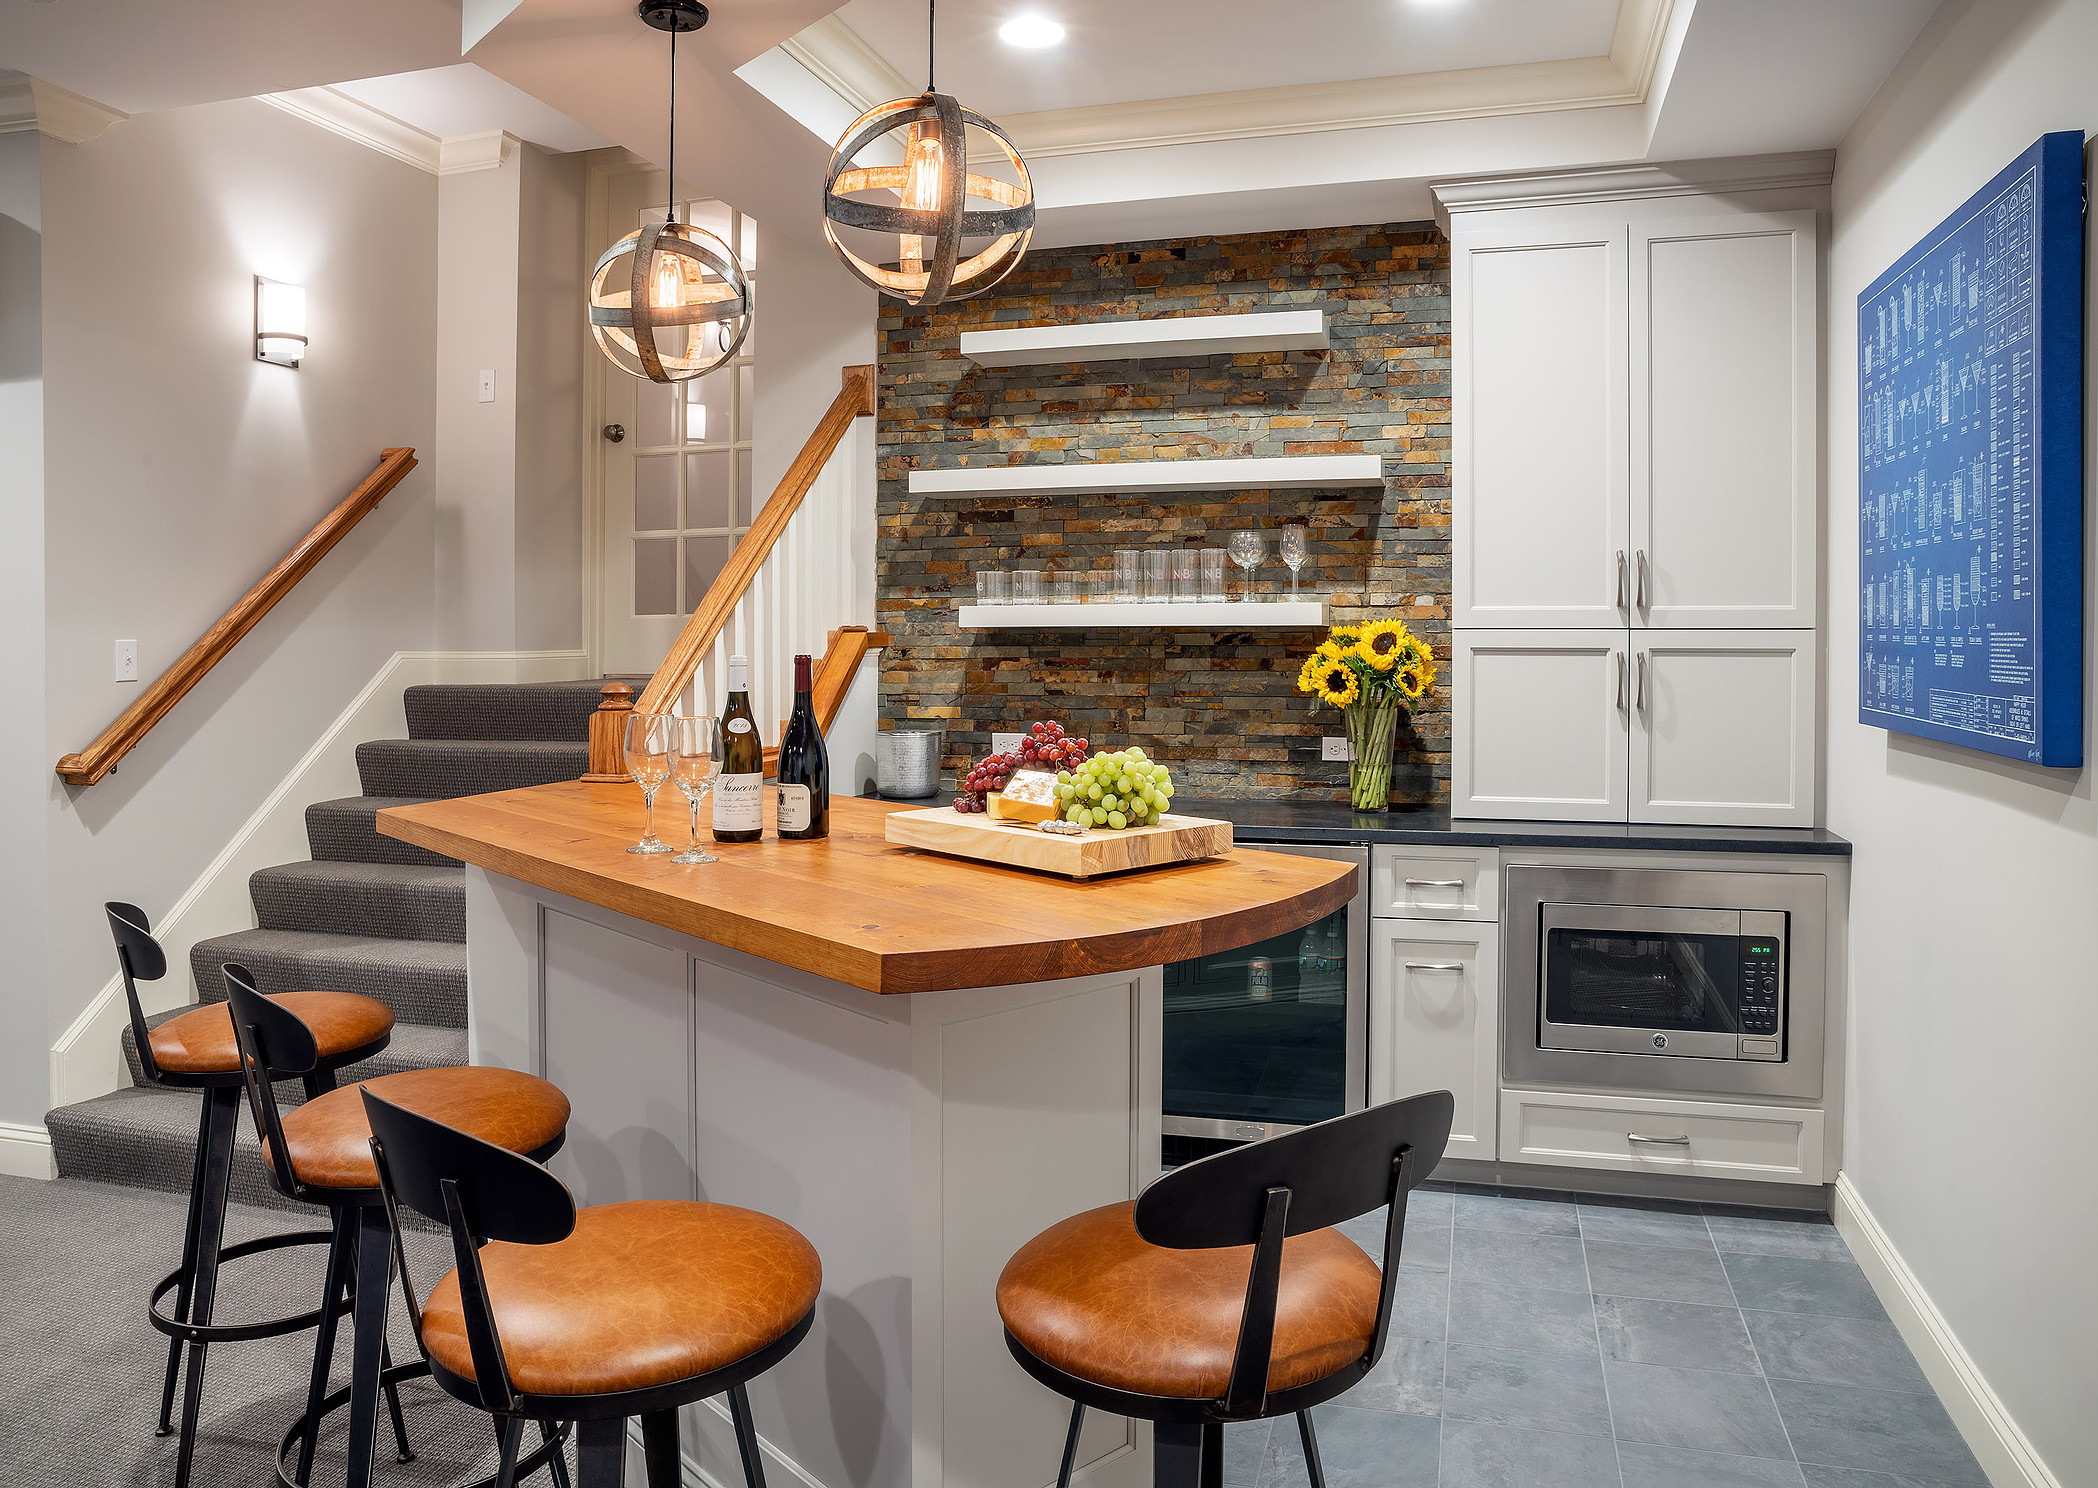 Great basement renovation ideas for family living and enjoyment